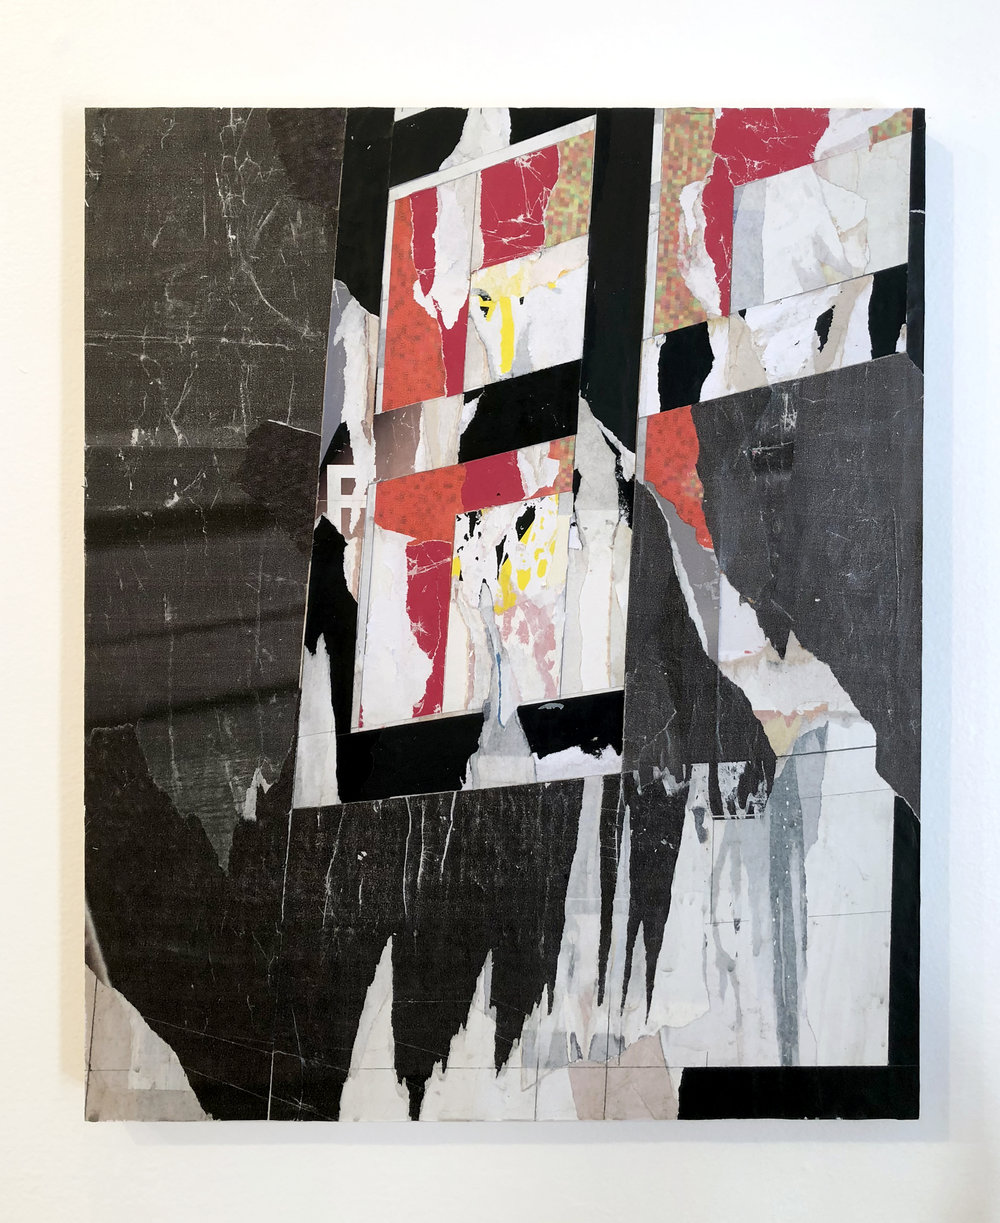 Untitled #R2, 2018, 20 x 16 in. Collage of found posters on wood panel $1,500